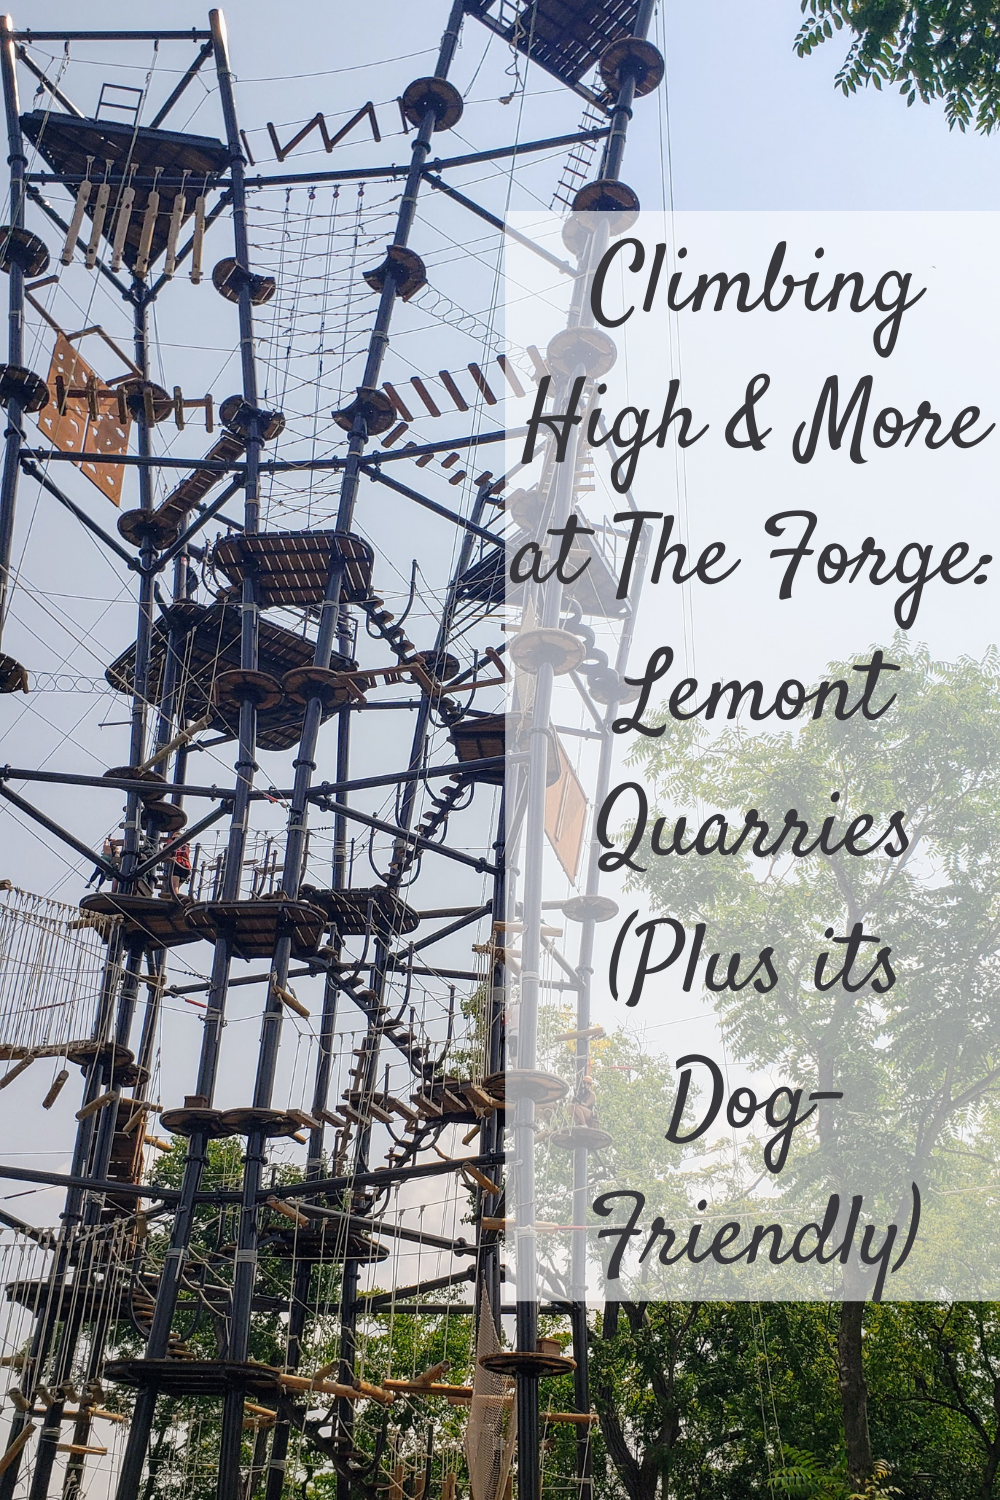 Climbing High & More at The Forge: Lemont Quarries (Plus its Dog-Friendly)